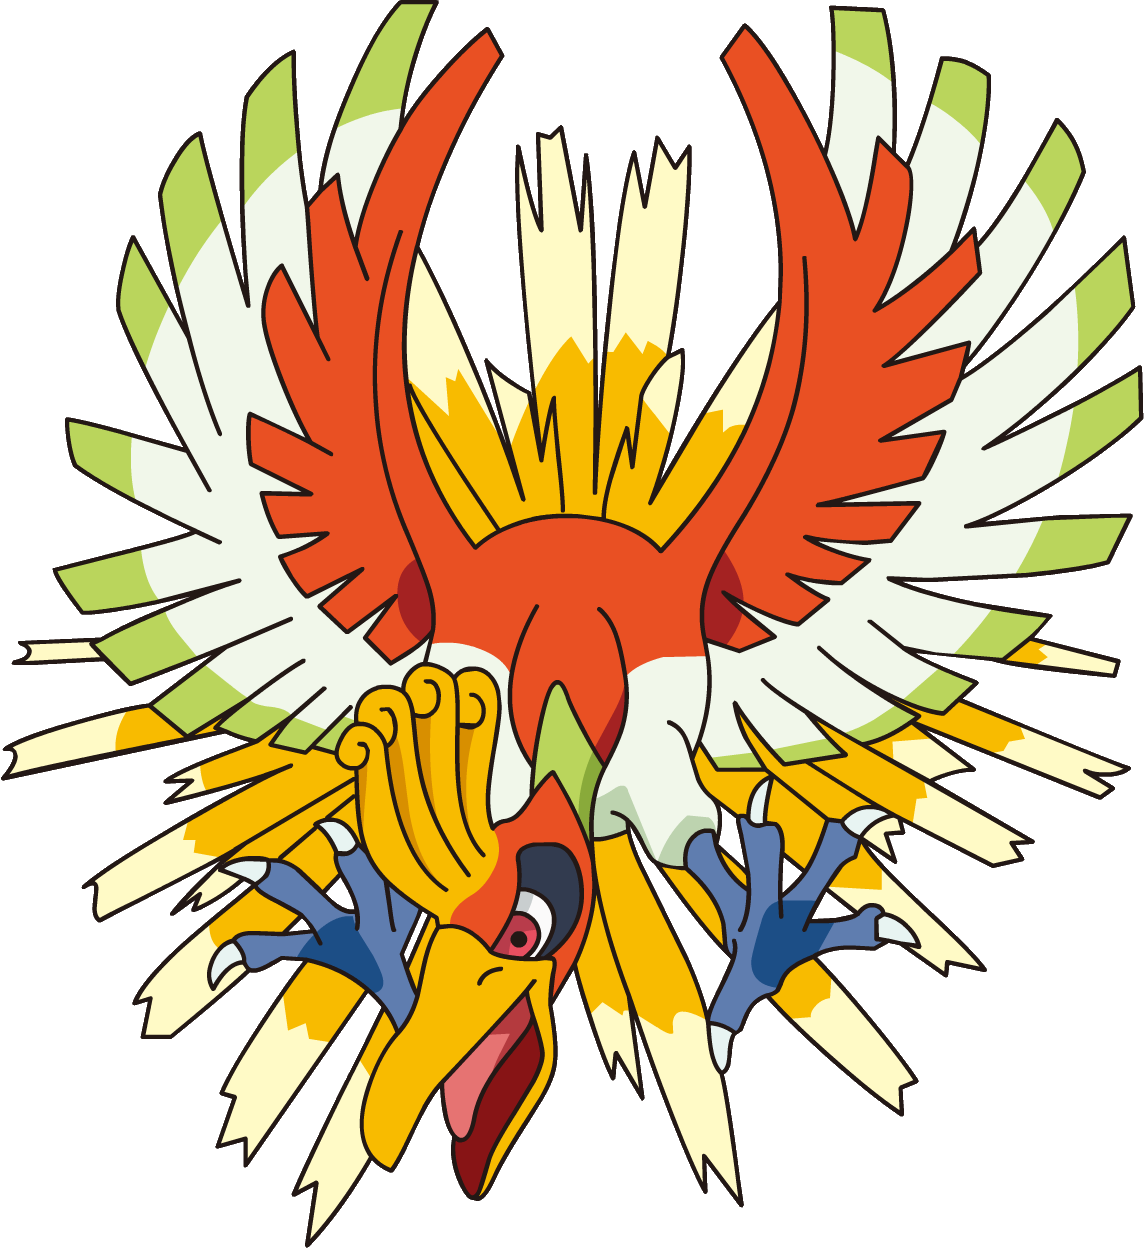 Ho-Oh appeared in the cartoon long before he was in a game.